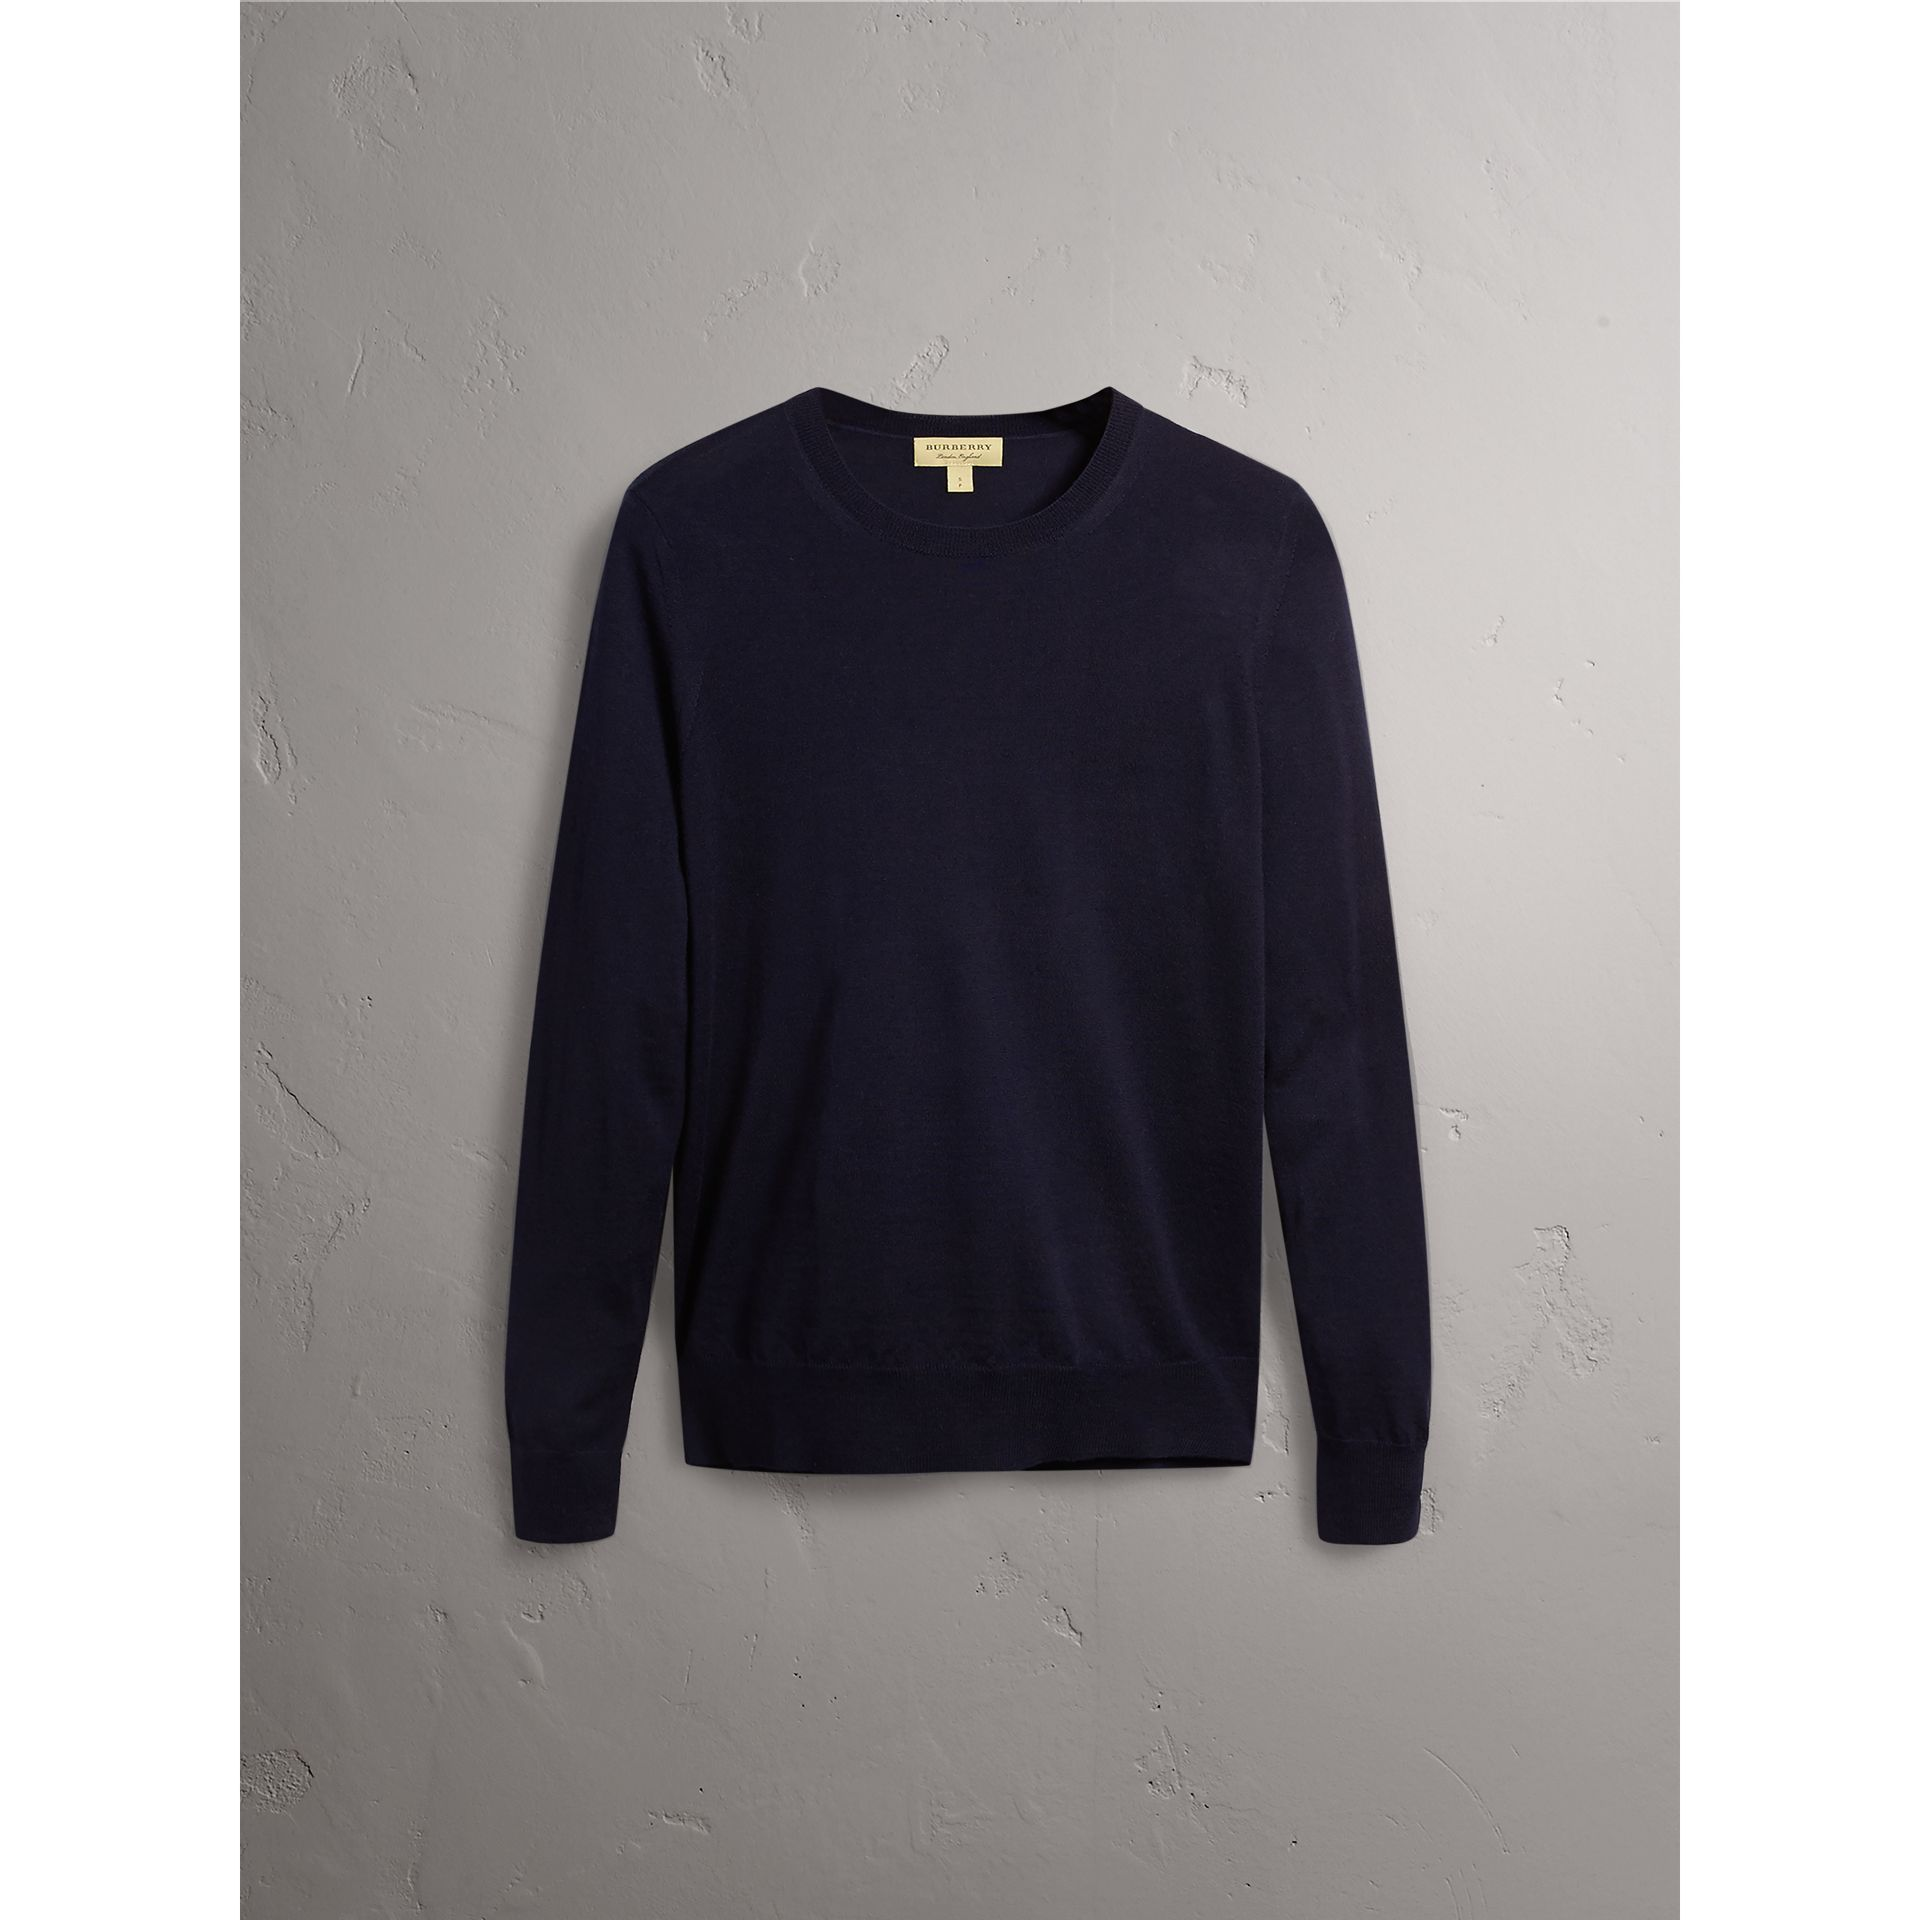 Check Detail Merino Wool Crew Neck Sweater in Navy - Women | Burberry - gallery image 4